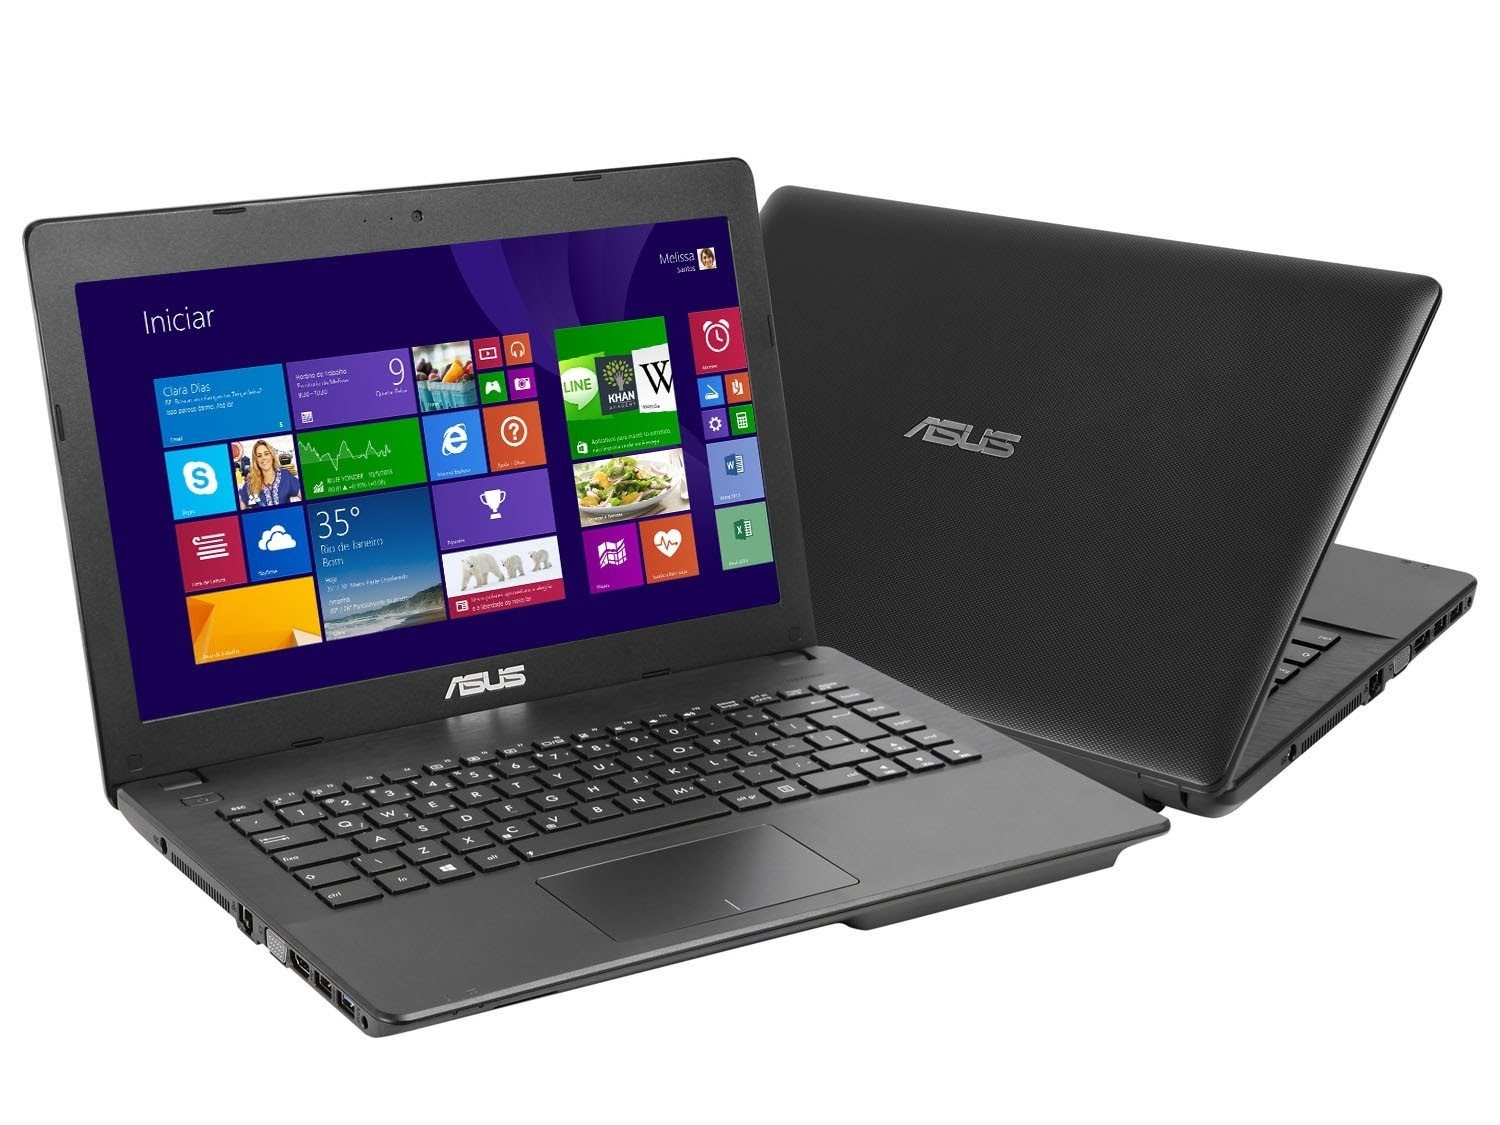 ASUS A43 SERIES INTEL INF UPDATE DESCARGAR CONTROLADOR